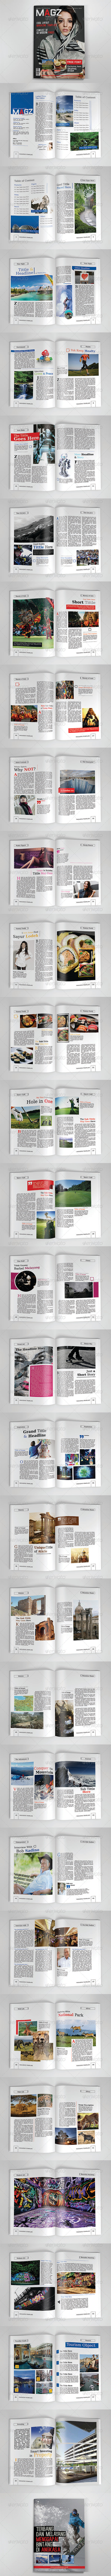 GraphicRiver A4 Magazine Template Vol.2 7149950